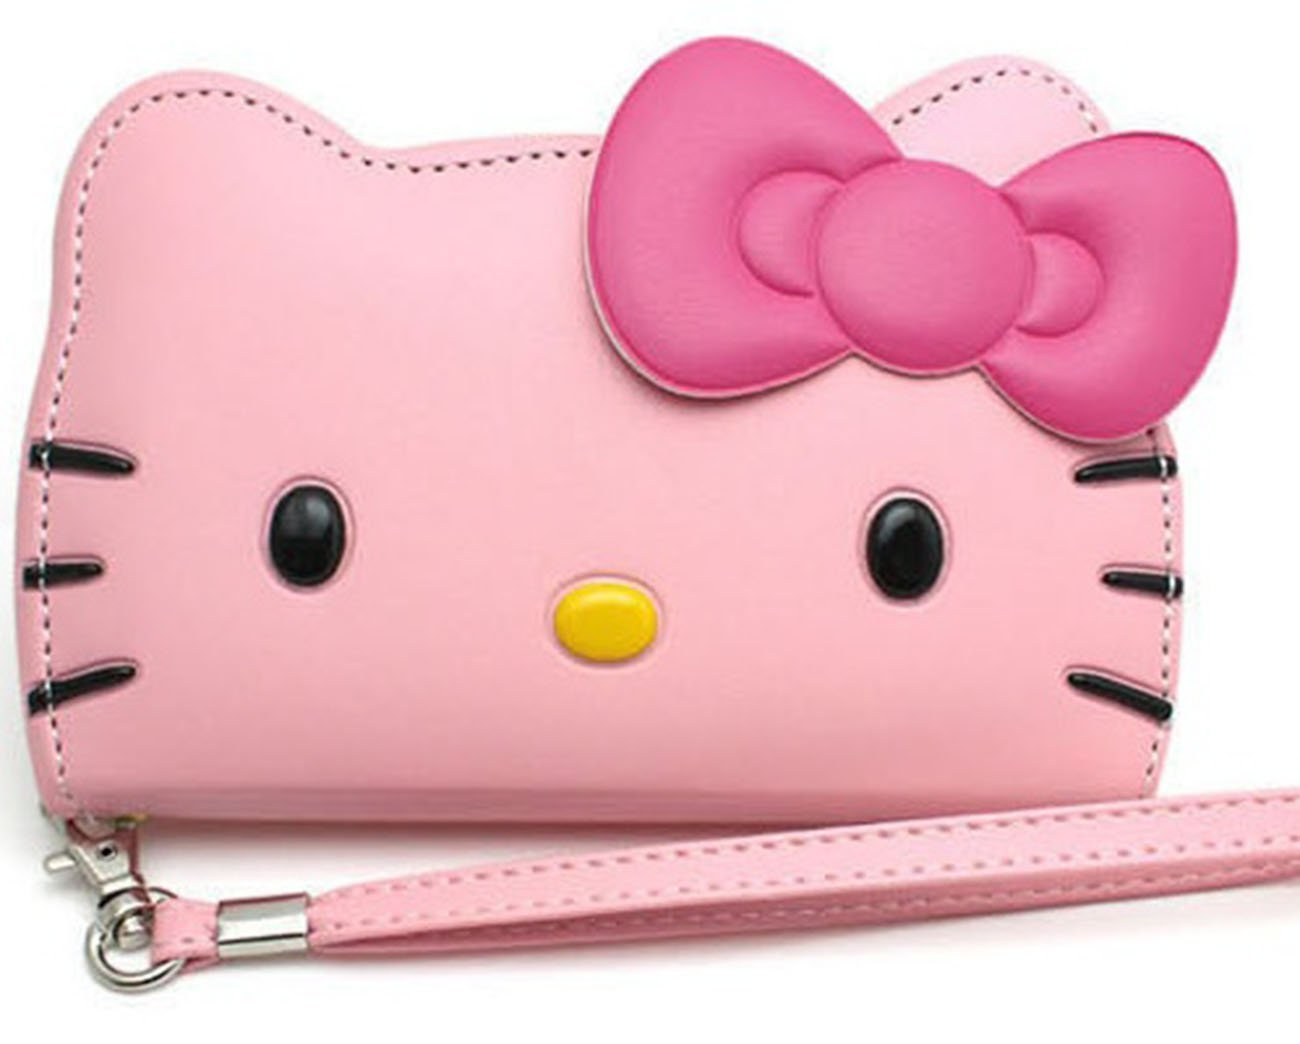 iPhone 5S Case Wallet, Hello Kitty 3D Wallet Case iPhone 5S 5 Screen Protector - Baby Pink